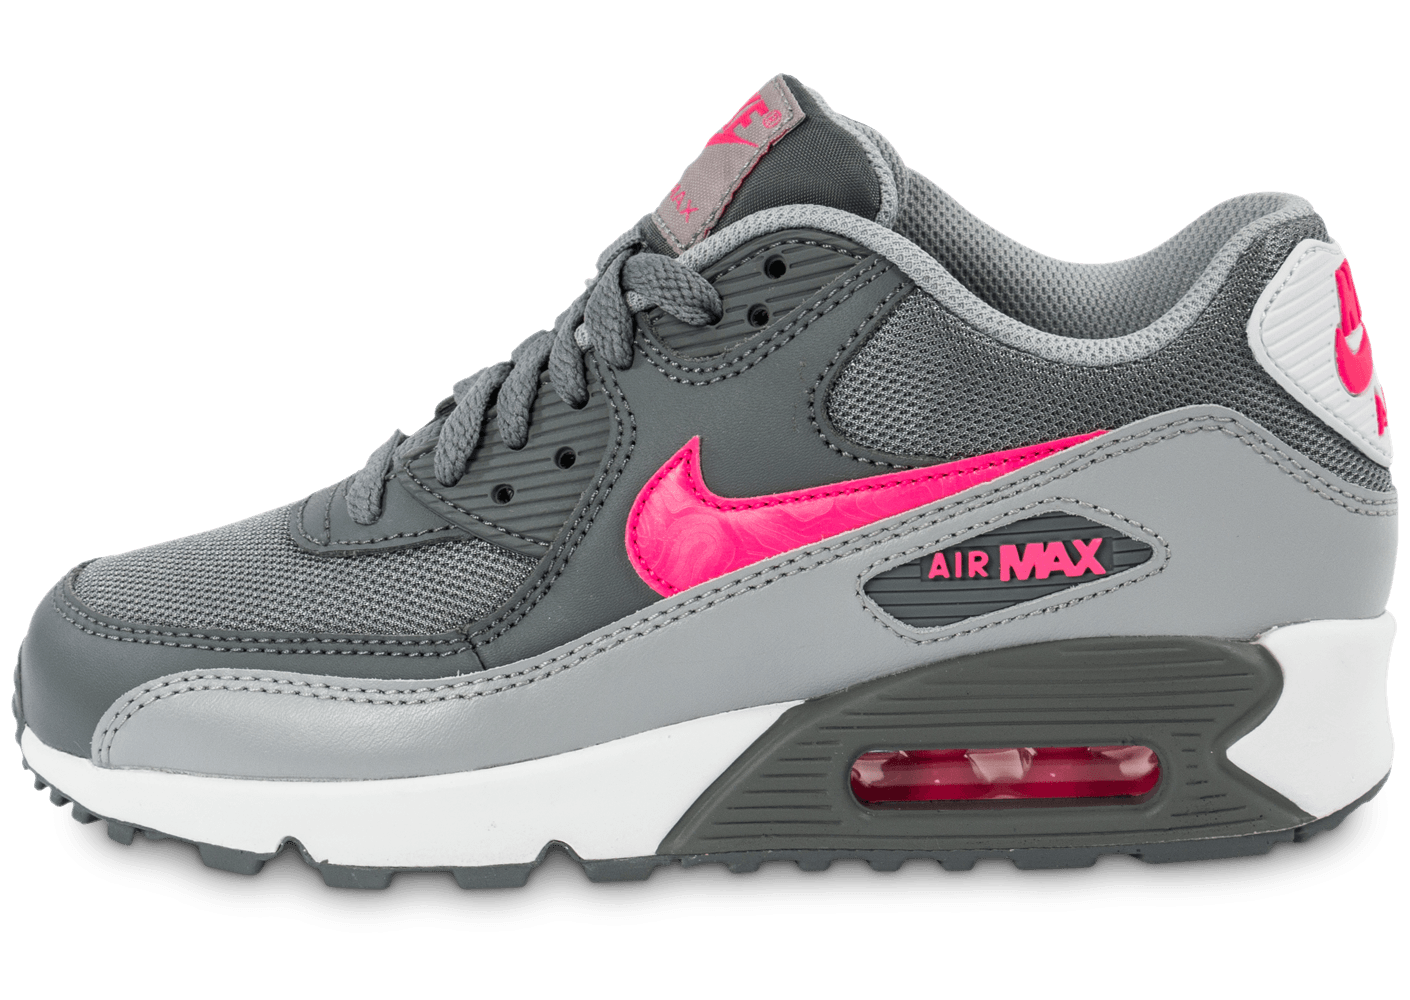 9adc0470a29 nike air max 90 grise et rose